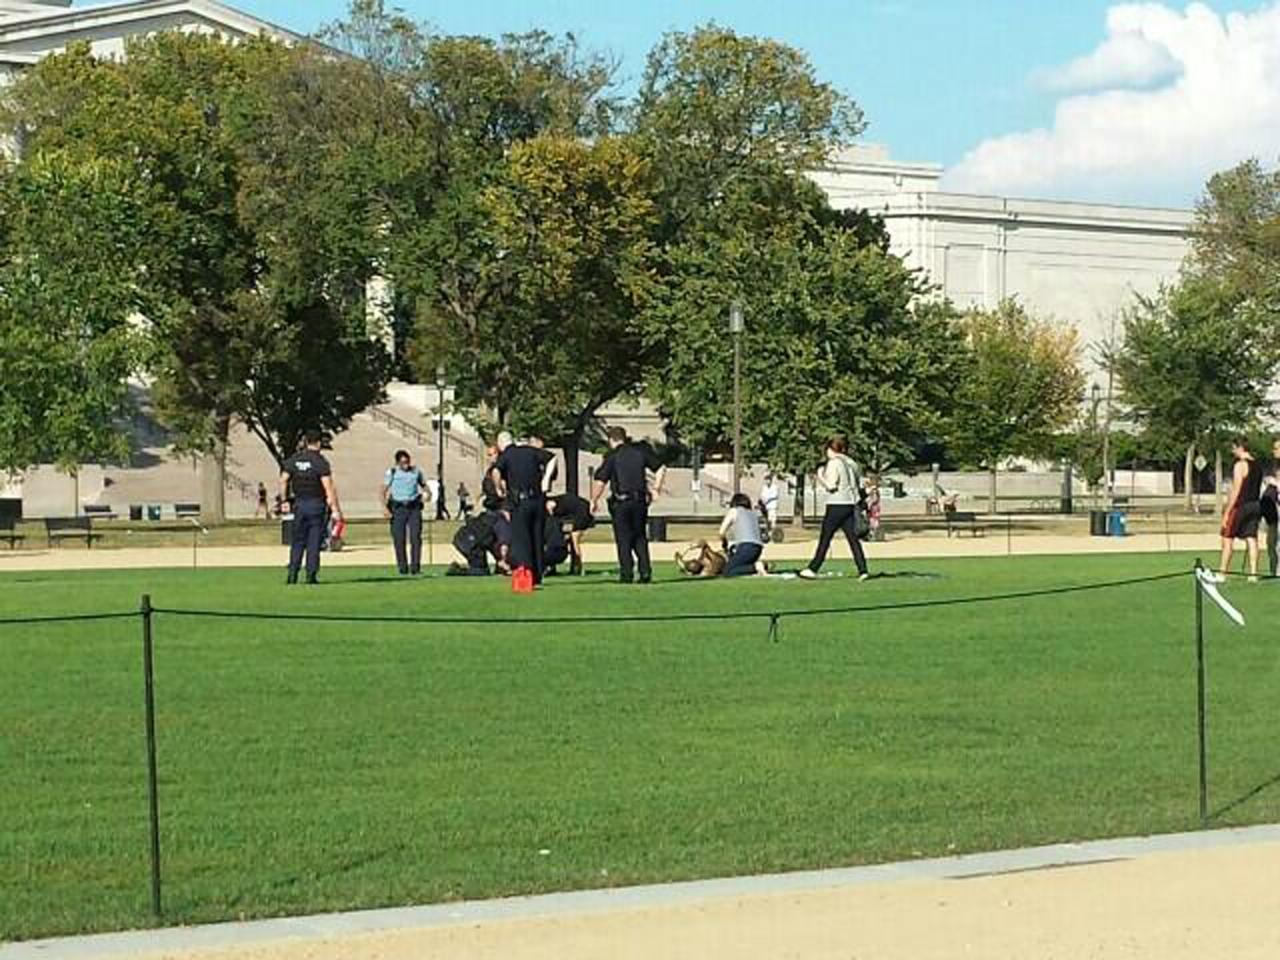 First responders and people assist a man who apparently set himself on fire at the National Mall in Washington in this October 4, 2013 handout photo by Vanessa Sink. The man was rushed to a local hospital, officials said, and was conscious and breathing when he was taken to the hospital. REUTERS/Vanessa Sink/Handout via Reuters (UNITED STATES - Tags: CIVIL UNREST HEALTH SOCIETY)   ATTENTION EDITORS - THIS IMAGE WAS PROVIDED BY A THIRD PARTY. FOR EDITORIAL USE ONLY. NOT FOR SALE FOR MARKETING OR ADVERTISING CAMPAIGNS. NO SALES. NO ARCHIVES. MANDATORY CREDIT. THIS PICTURE IS DISTRIBUTED EXACTLY AS RECEIVED BY REUTERS, AS A SERVICE TO CLIENTS